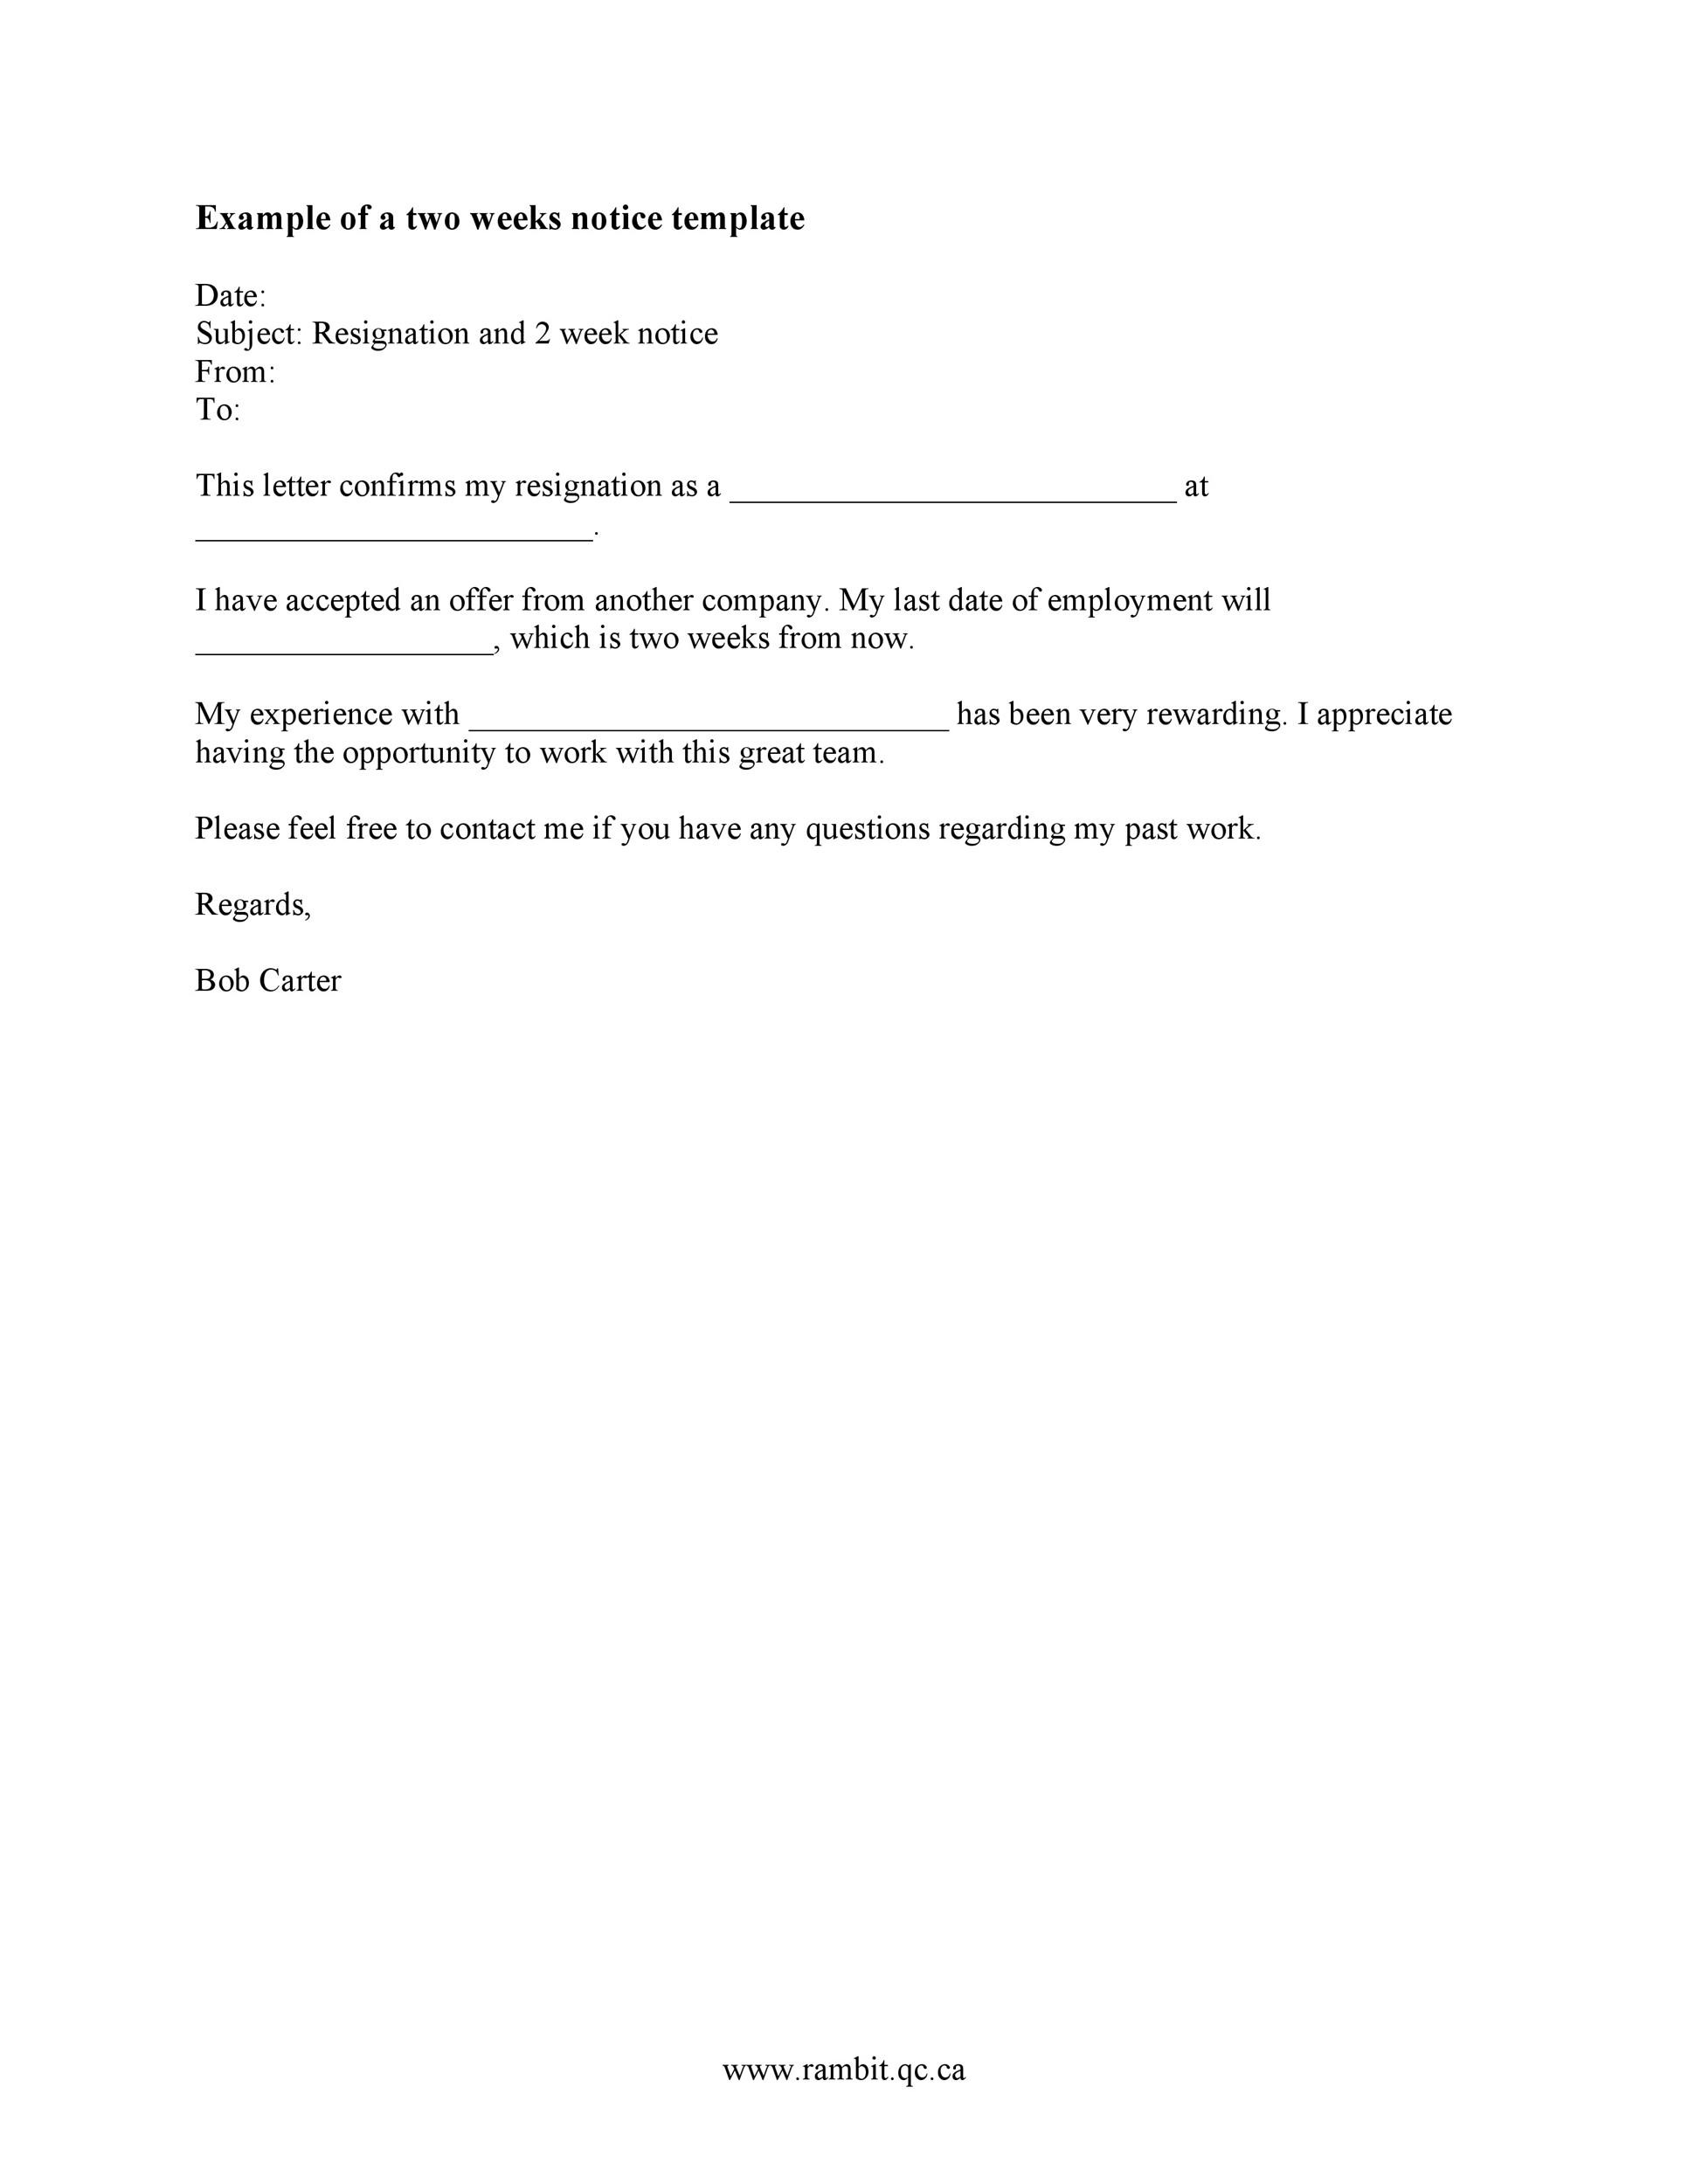 Sample 2 Weeks Notice Letter from templatelab.com